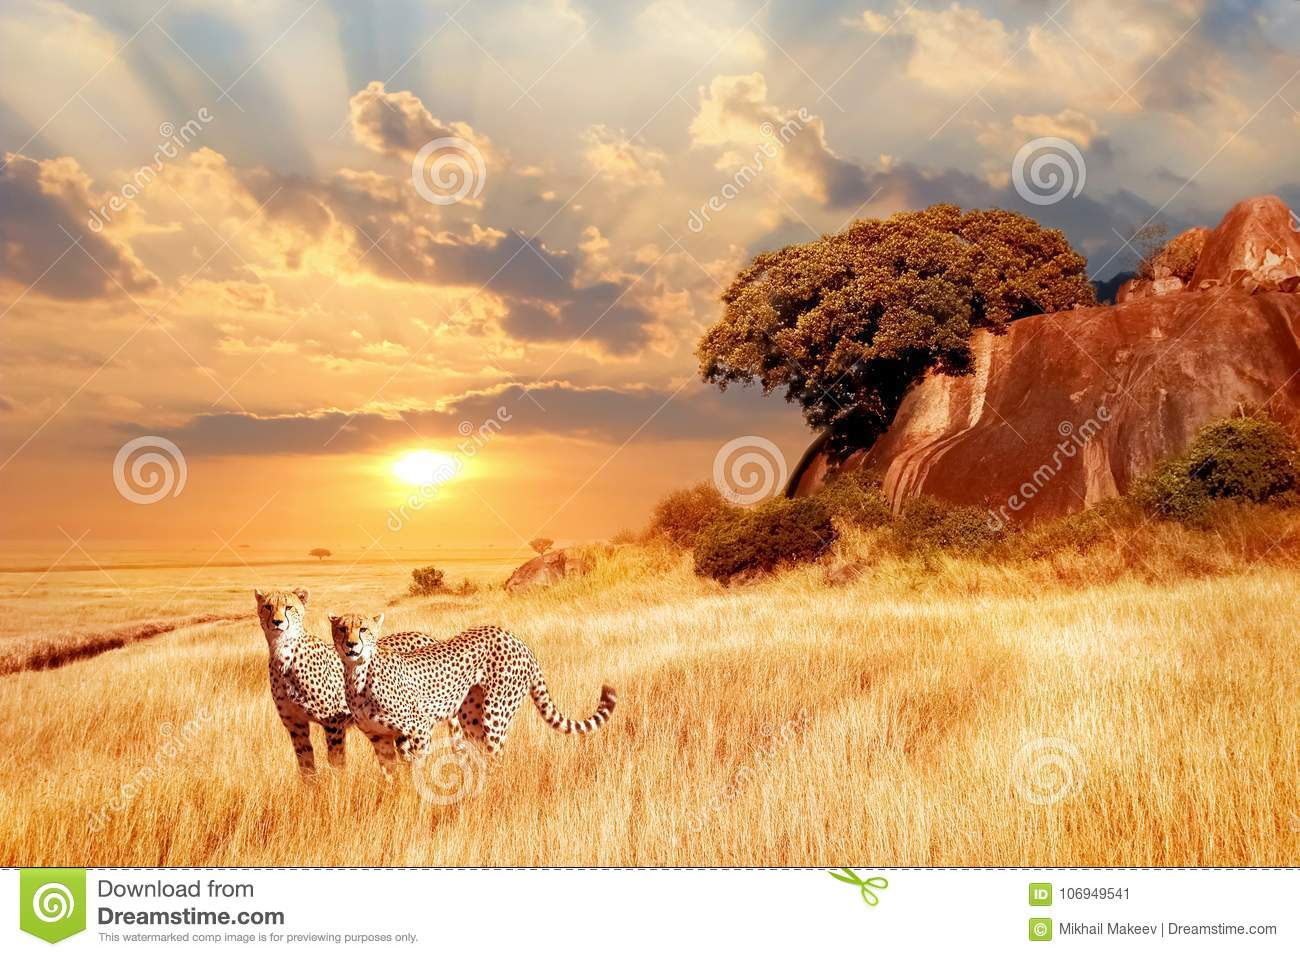 Download Cheetahs In The African Savanna Against The Backdrop Of Beautiful Sunset. Serengeti National Park. Tanzania. Africa Stock Image - Image of bright, rock: 106949541